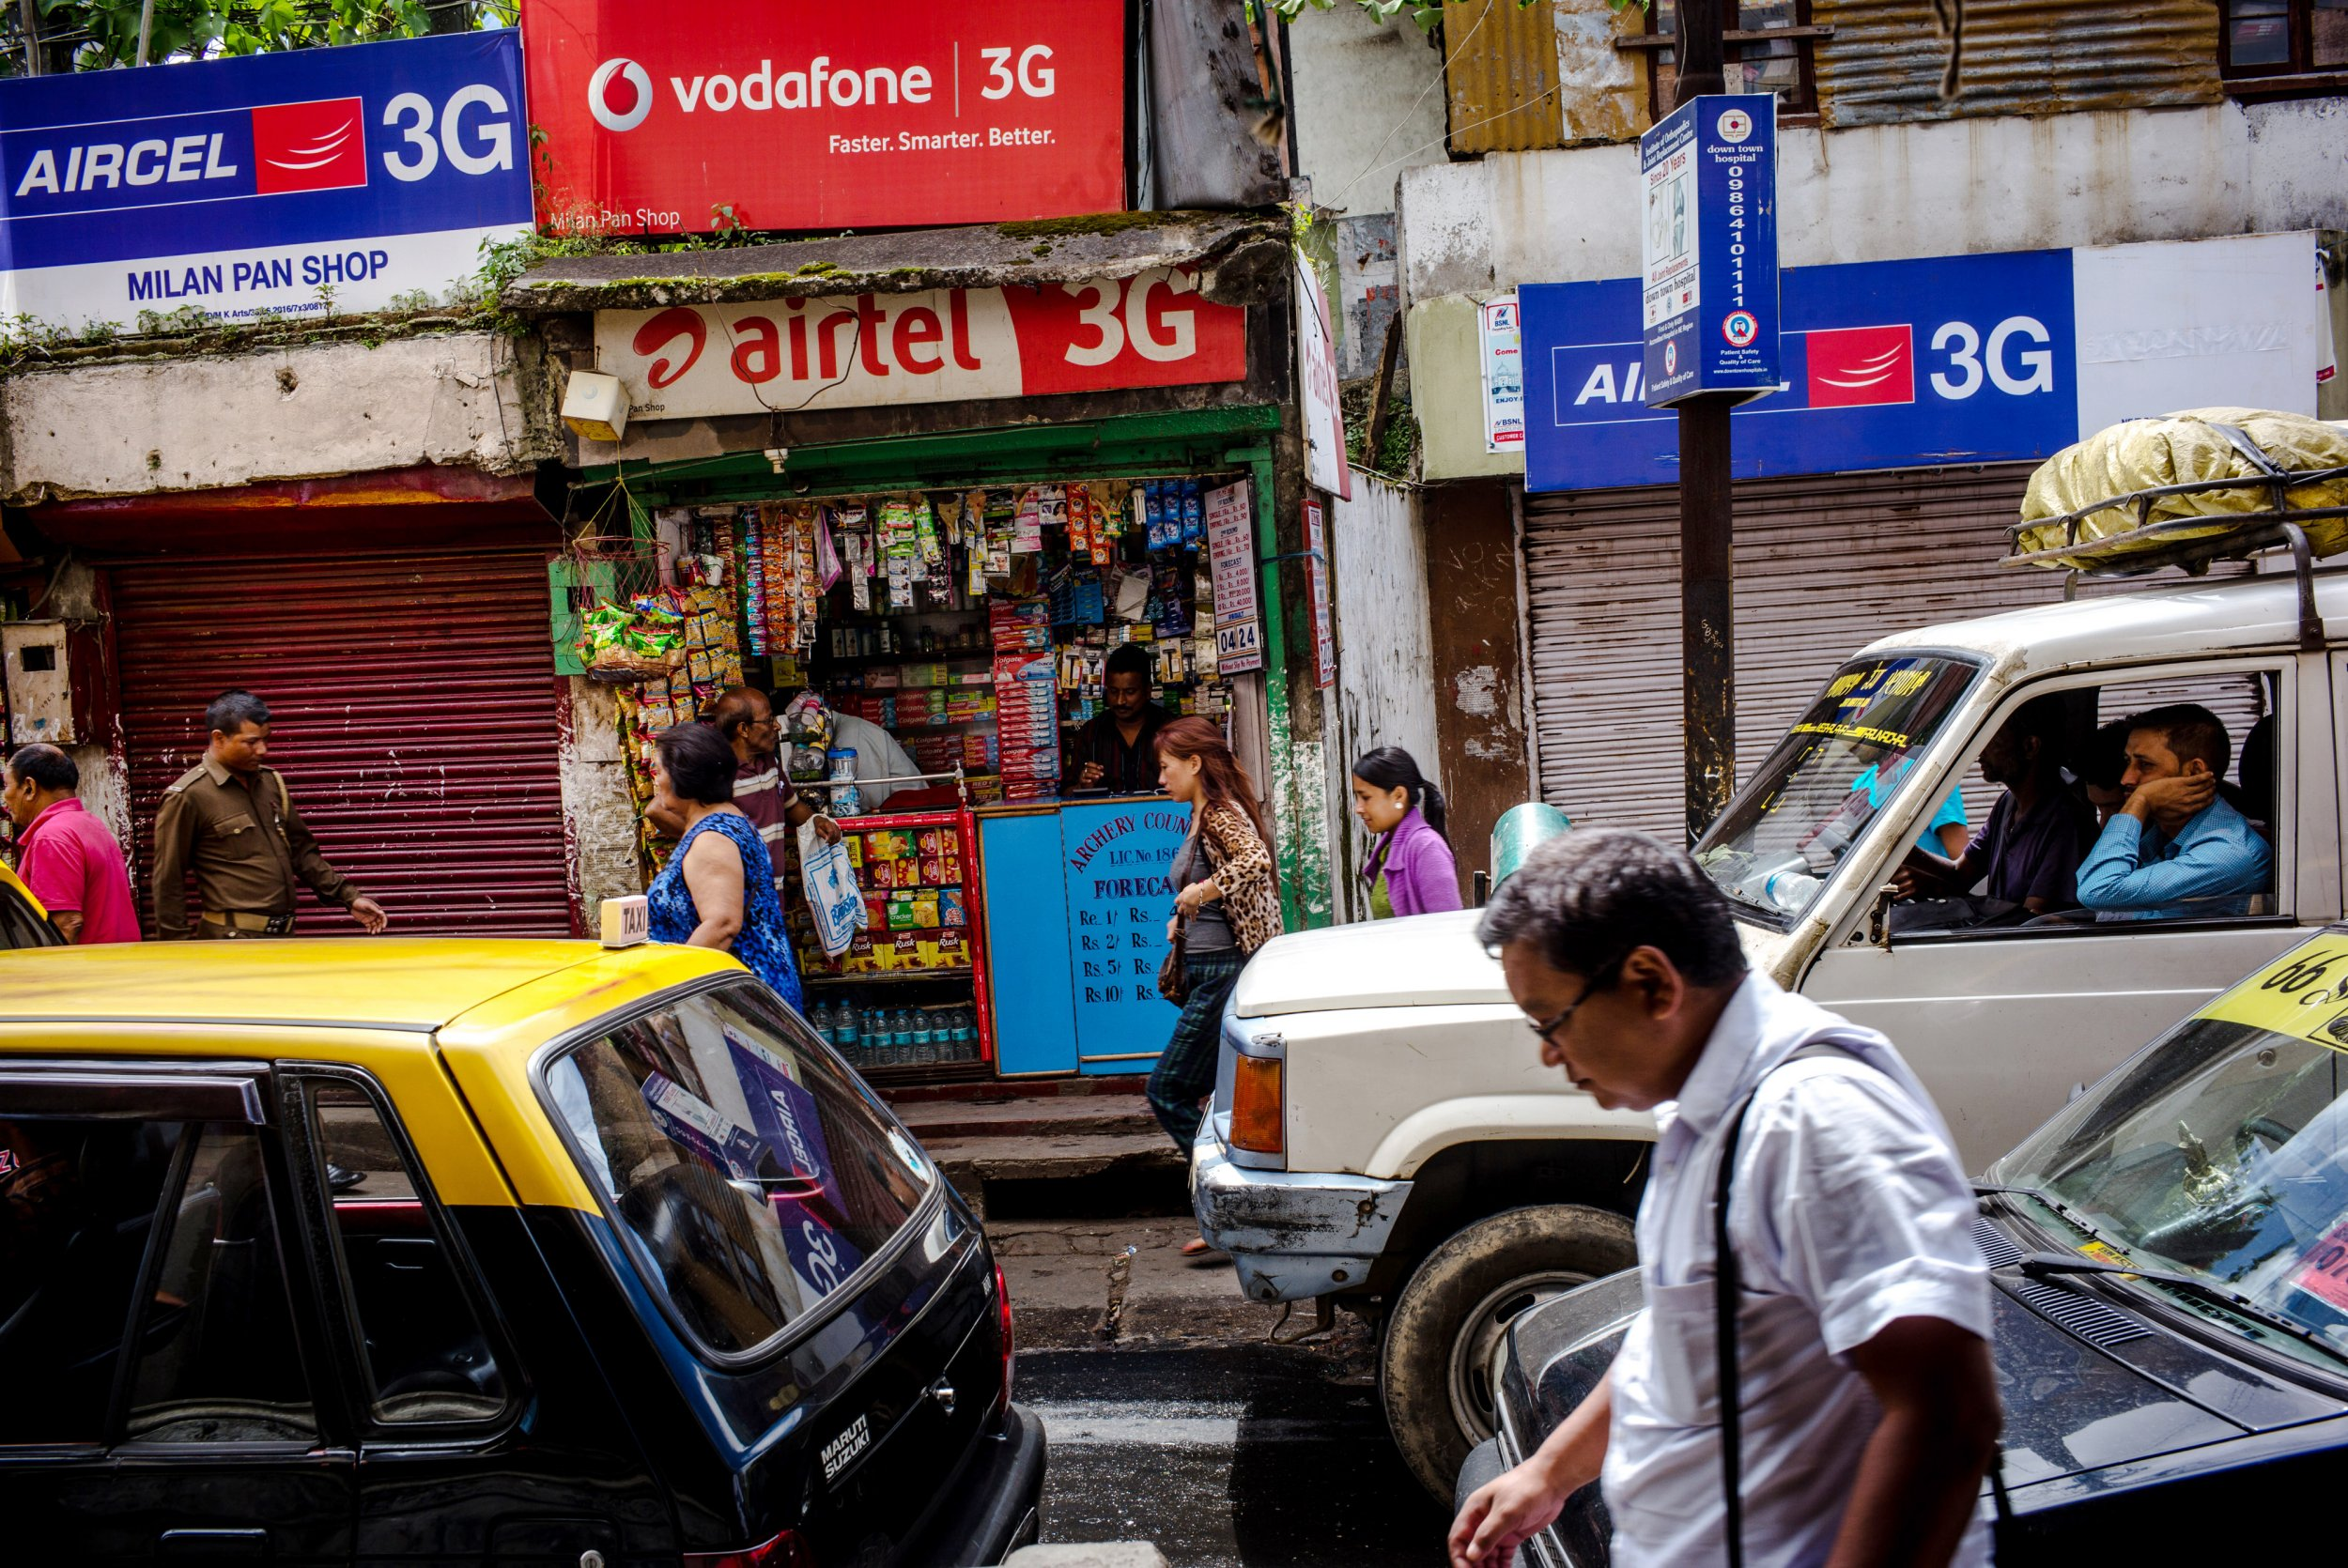 Mobile recharge stores are selling phone numbers of girls in India (Getty) Pedestrians walk past a mobile phone store in Shillong, Meghalaya, India, on Wednesday, Aug. 10, 2016. India's inflation accelerated more than estimated in July, narrowing room for monetary easing as investors wait to see who will replace hawkish central bank Governor Raghuram Rajan next month. Photographer: Sanjit Das/Bloomberg via Getty Images